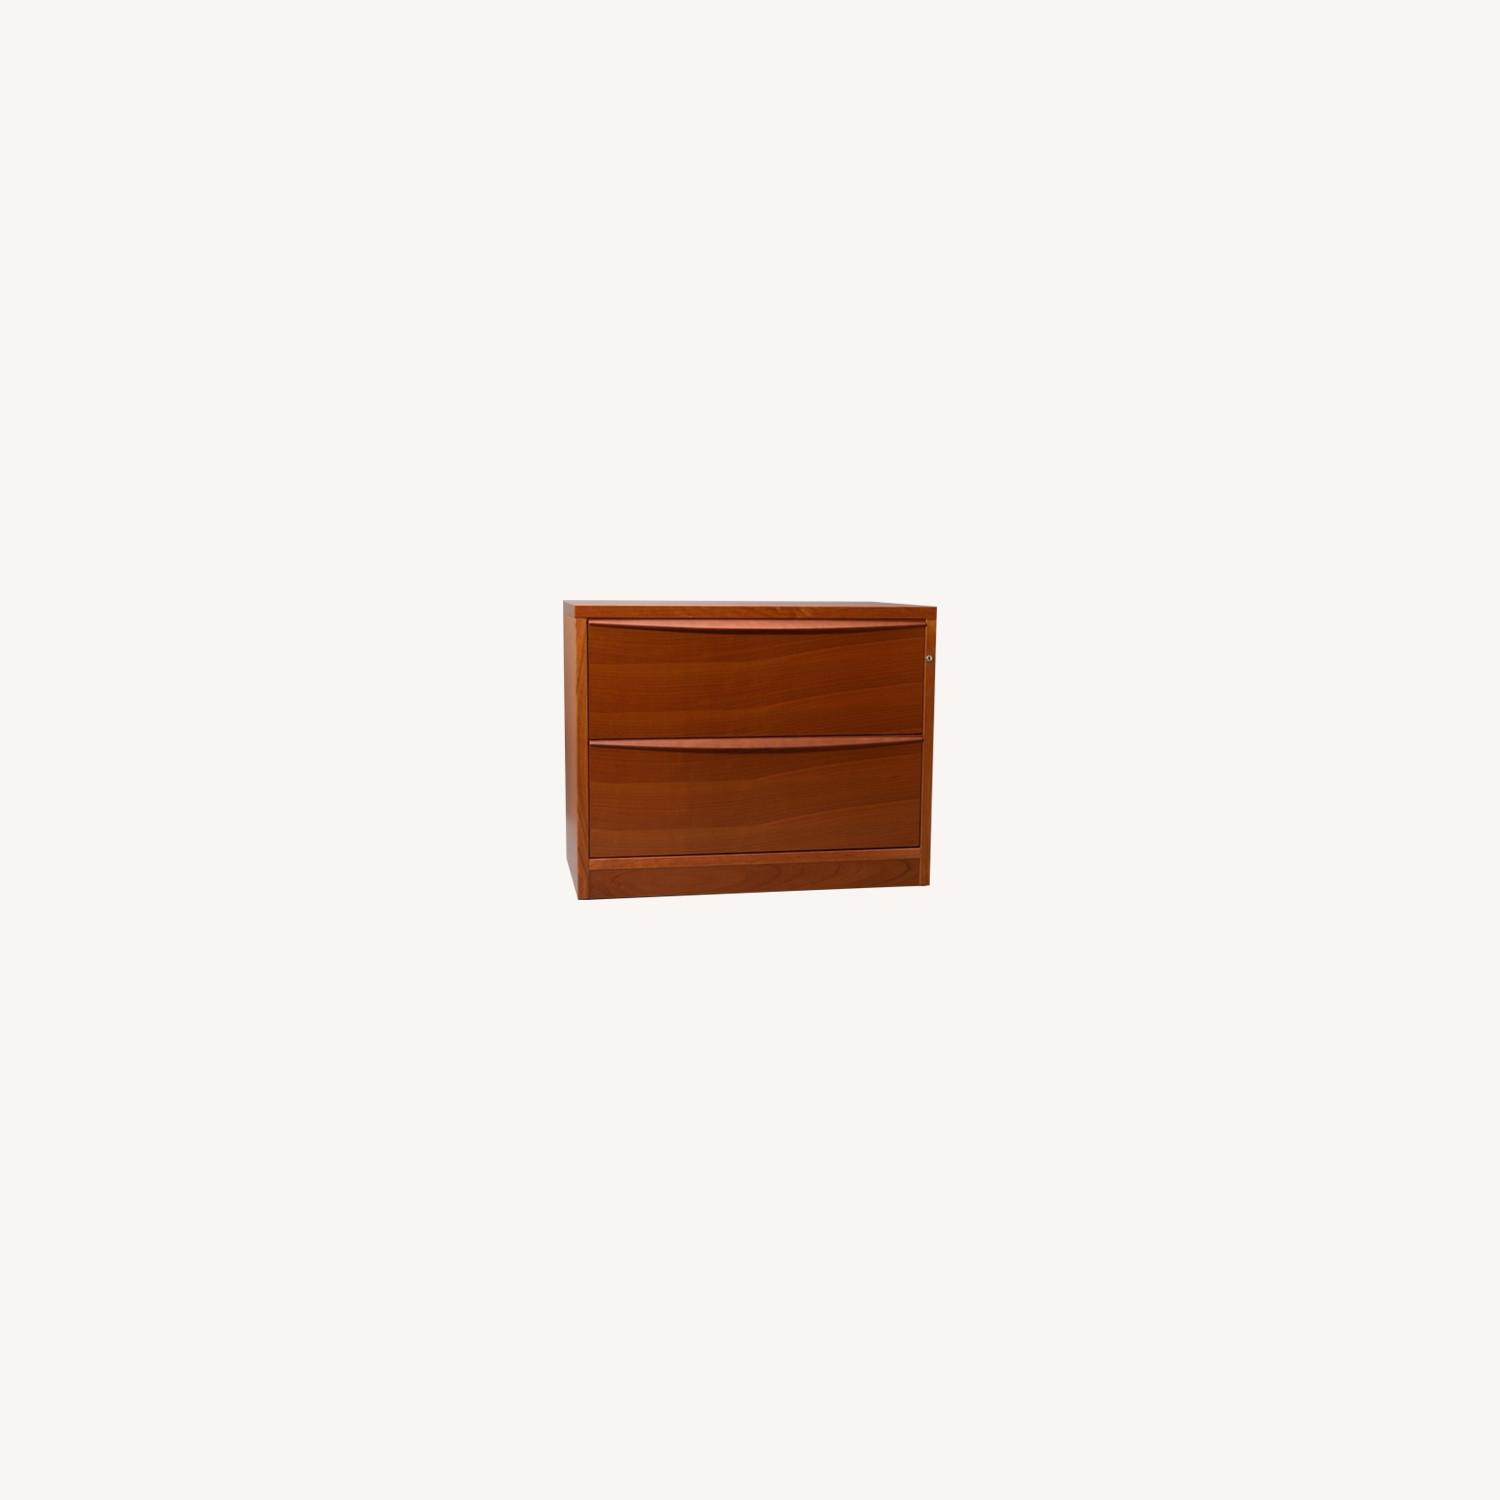 Jesper Office Cherry 2 Drawer Lateral Filing Cabinet - image-0